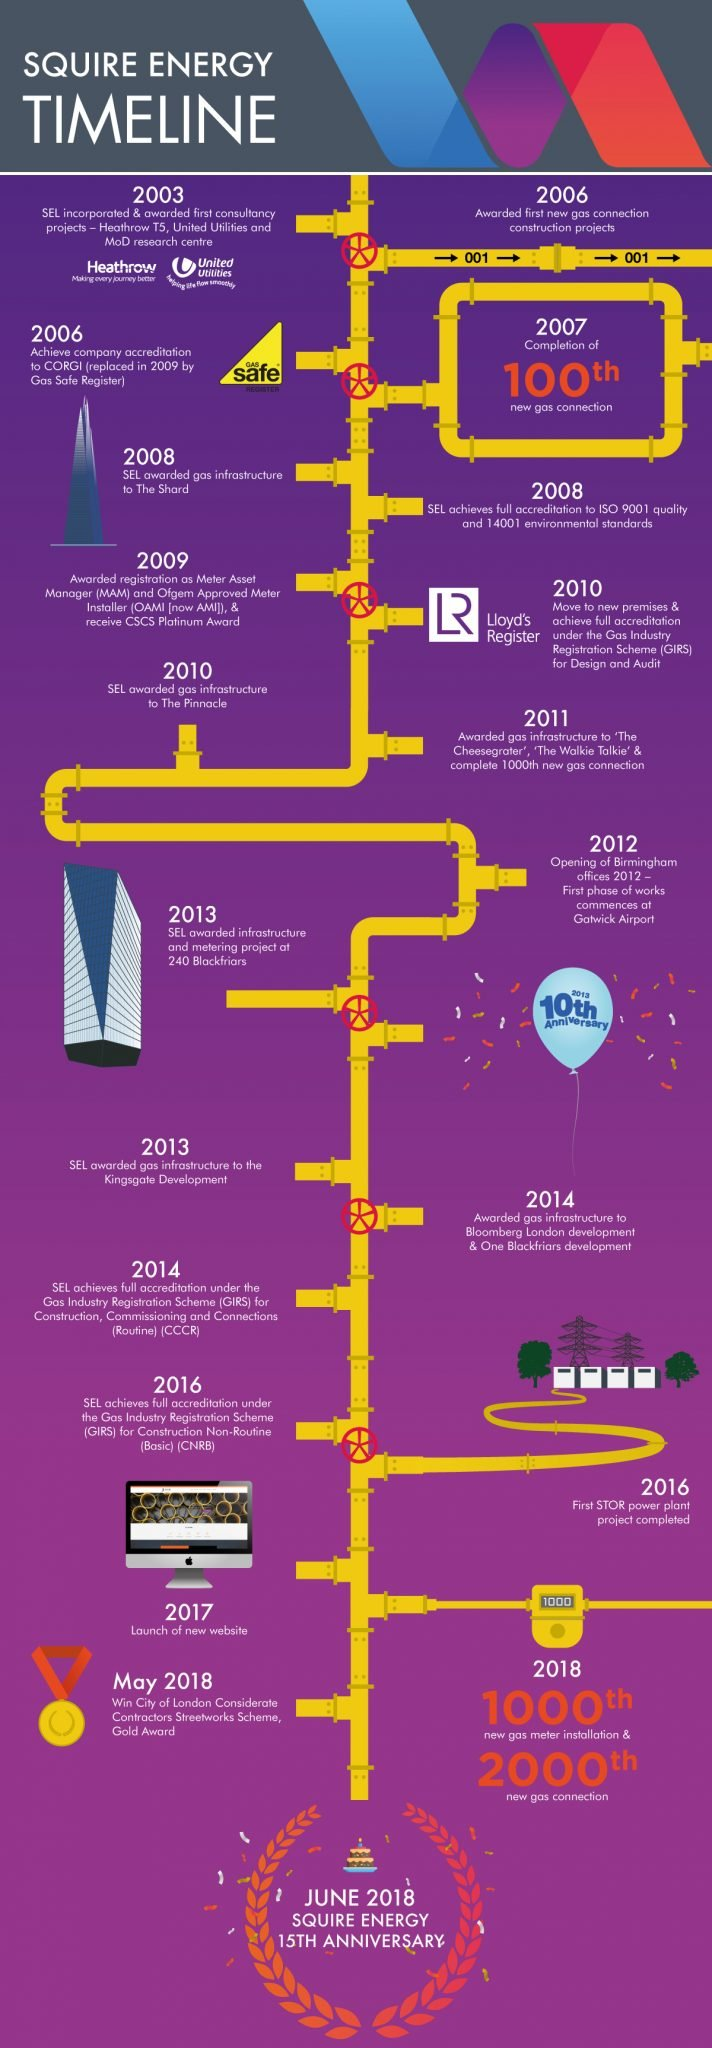 Infographic designed by RONIN Marketing outlining Squire Energy's journey over the last fifteen years.